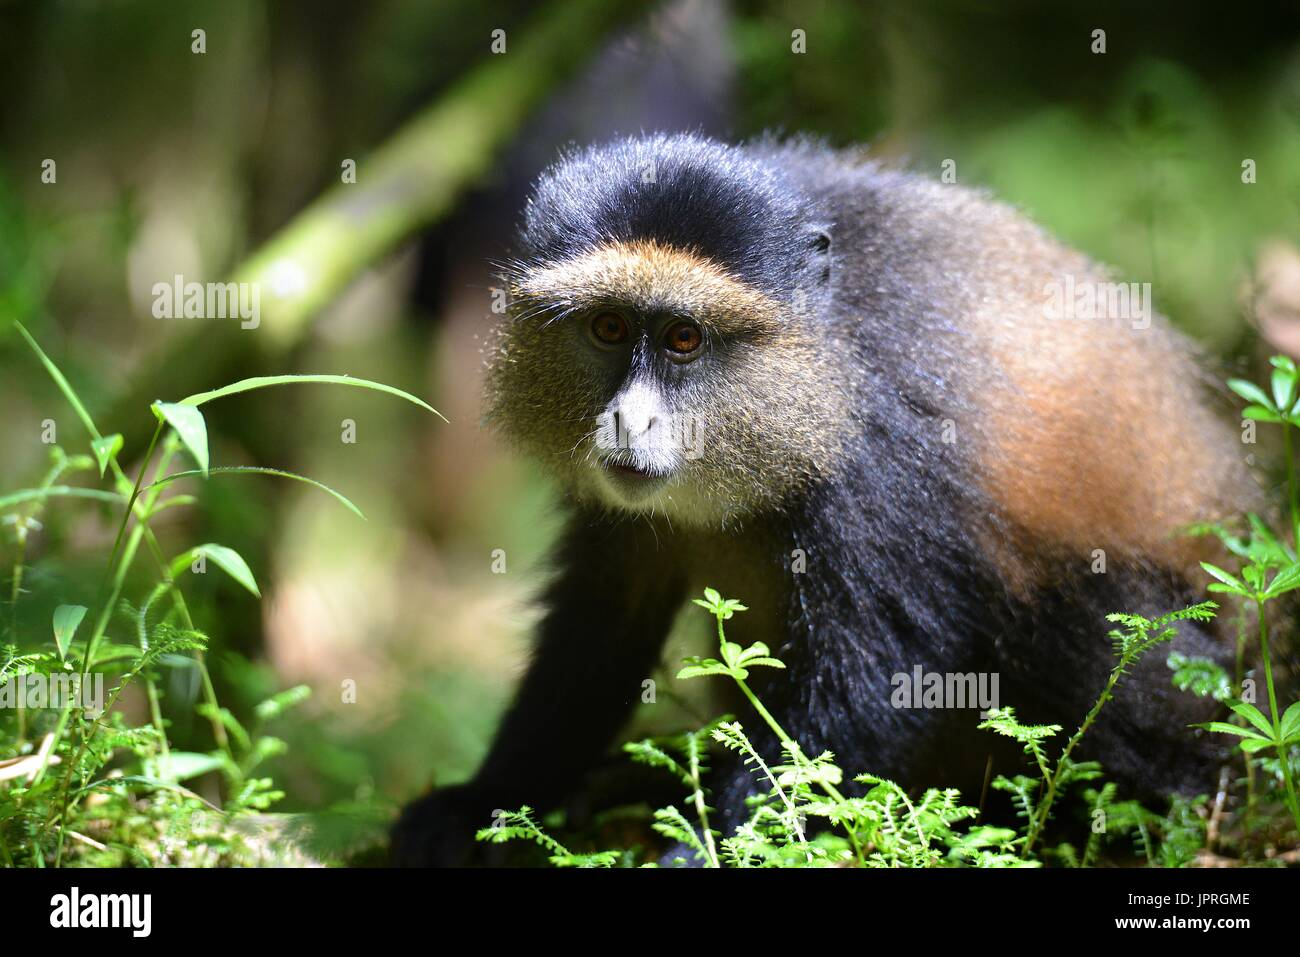 Golden monkeys living in the Virunga Mountains of Northern Rwanda. - Stock Image